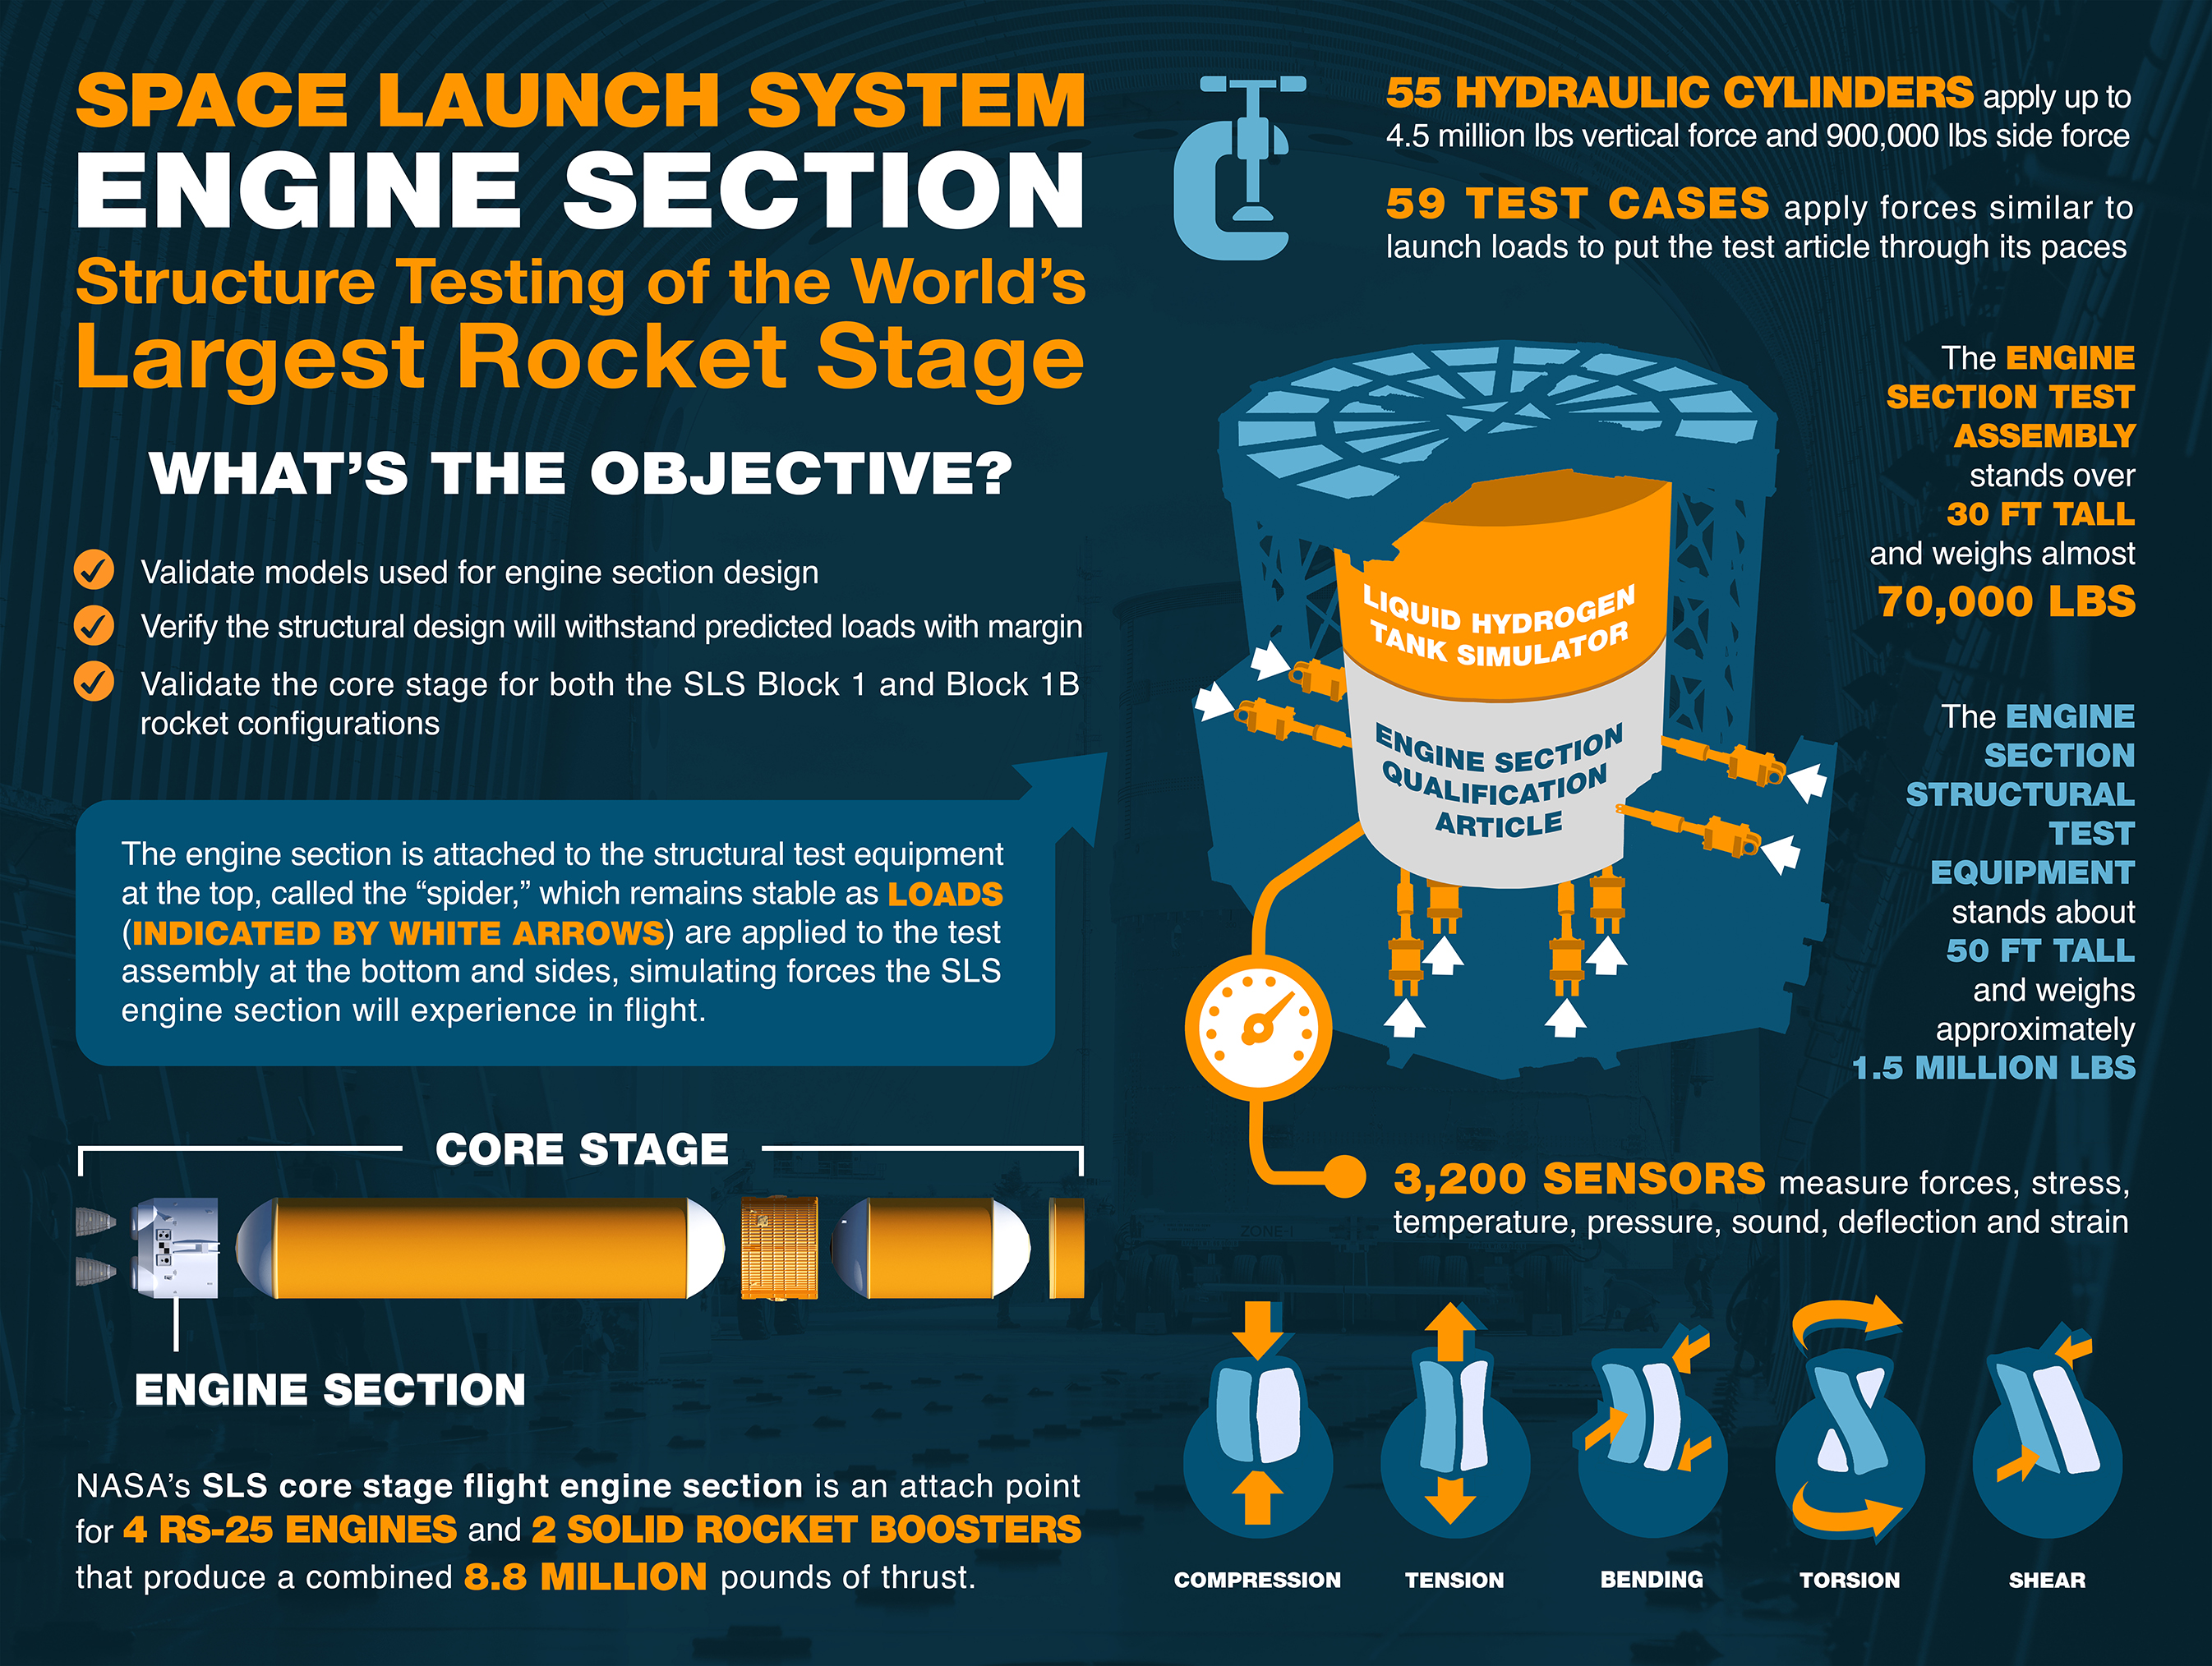 48c24c808c Structural Testing Complete on SLS Core Stage Powerhouse | NASA